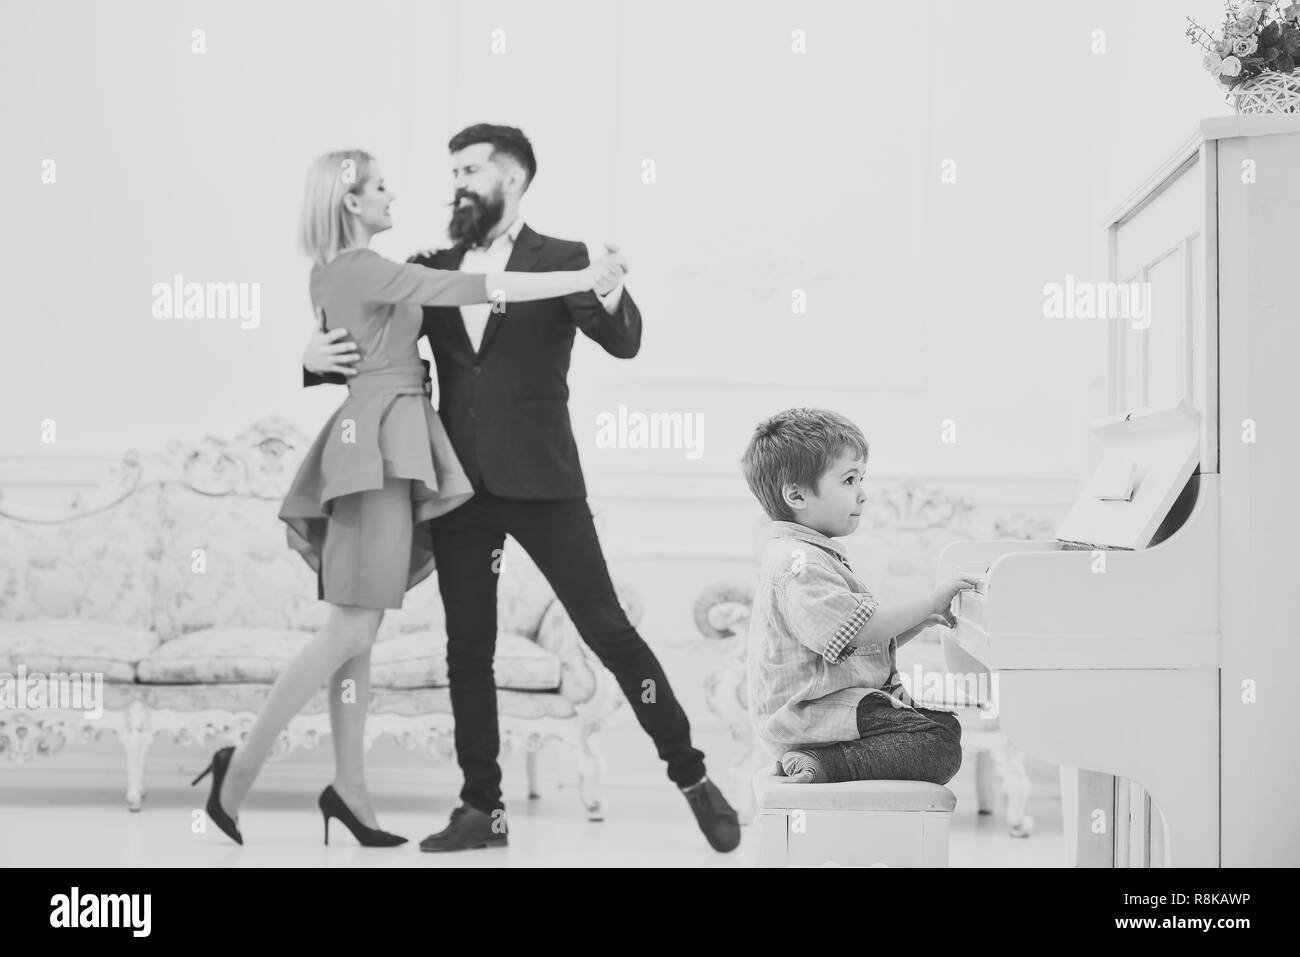 Boy adorable try to play piano musical instrument, while parents dancing. Musician education concept. Child sit next to piano, play music, white interior background. Rich parents enjoy parenthood. - Stock Image